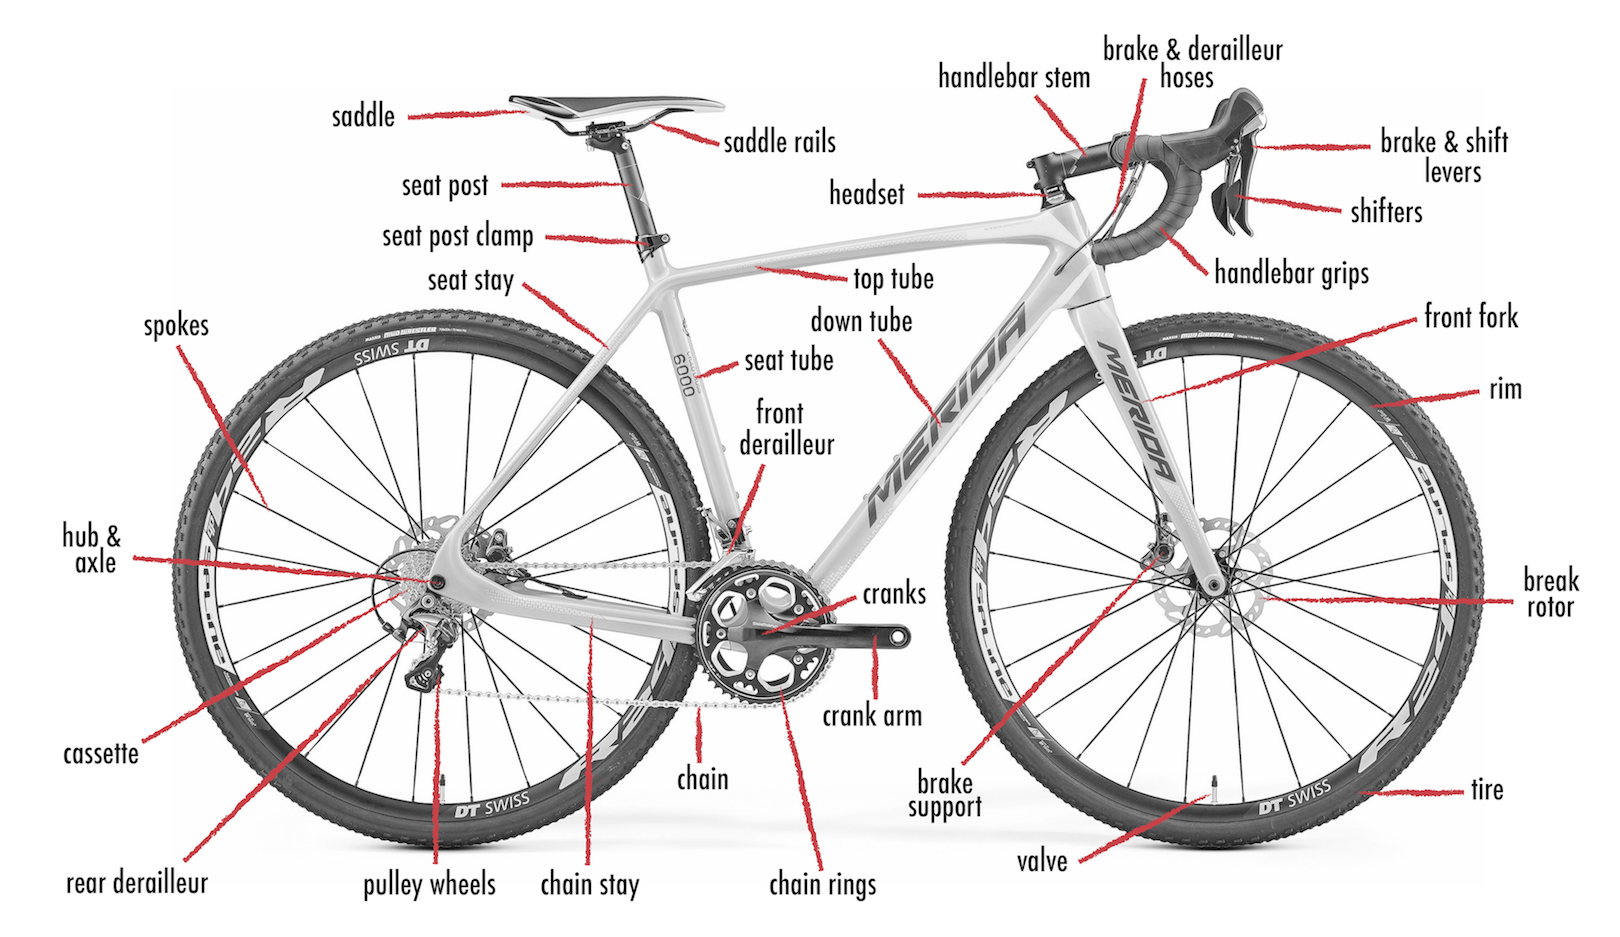 Bicycle components identified